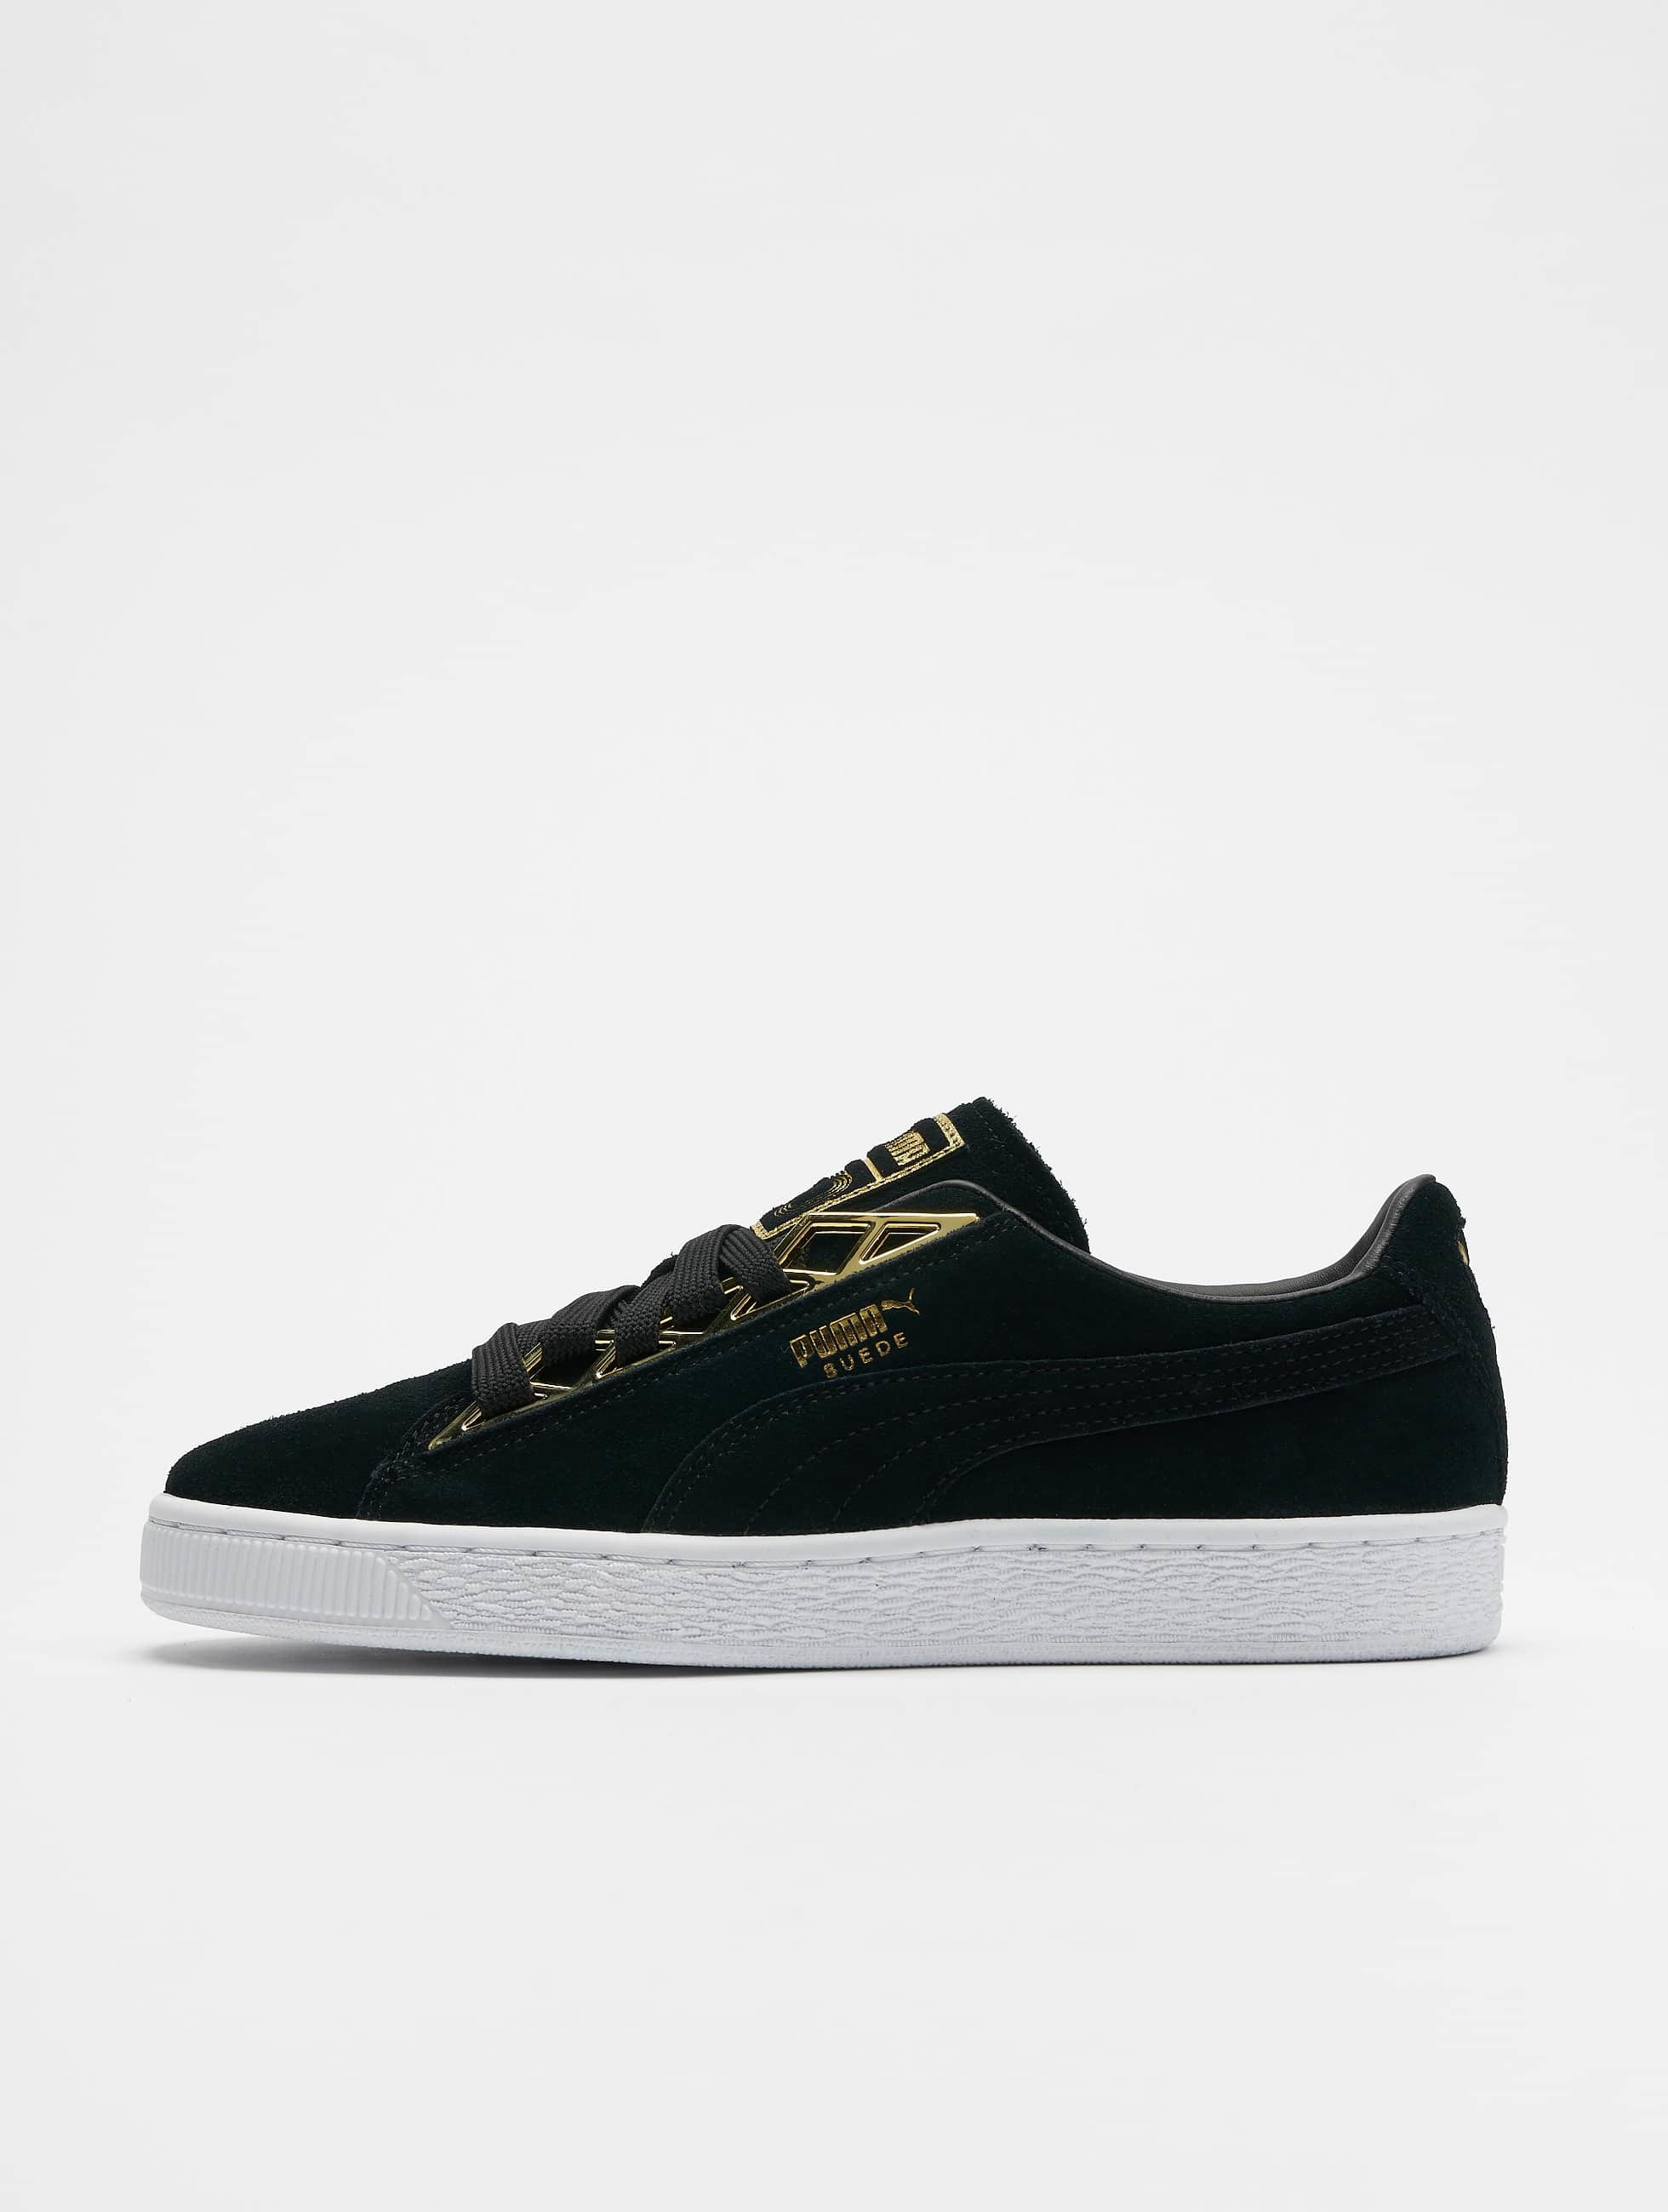 Puma Suede Jewel Metalic Sneakers Puma BlackPuma Black